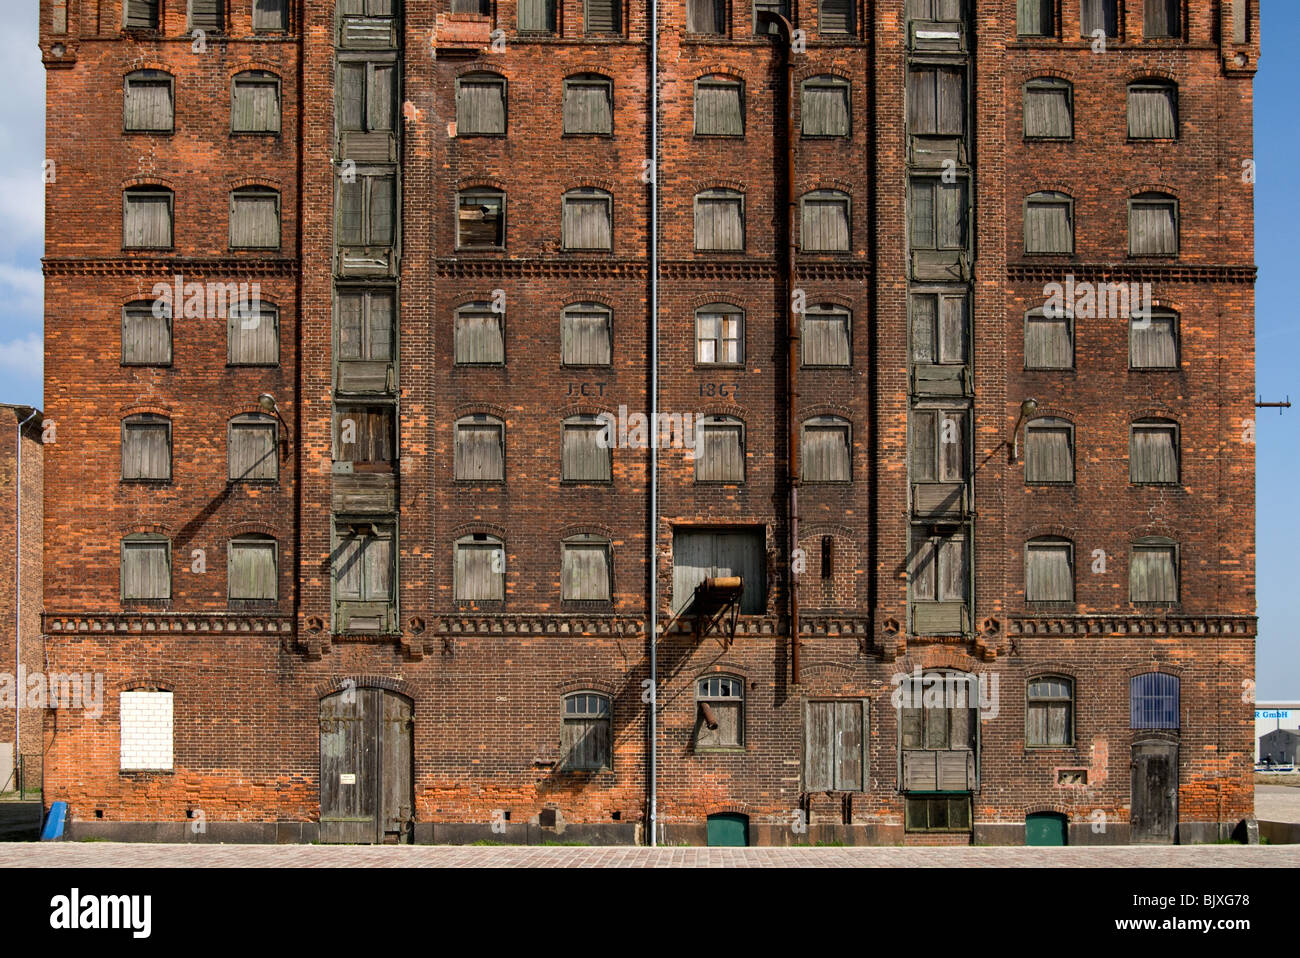 Historic storehouse in the old port of Wismar, Mecklenburg-Western Pomerania, Germany. - Stock Image